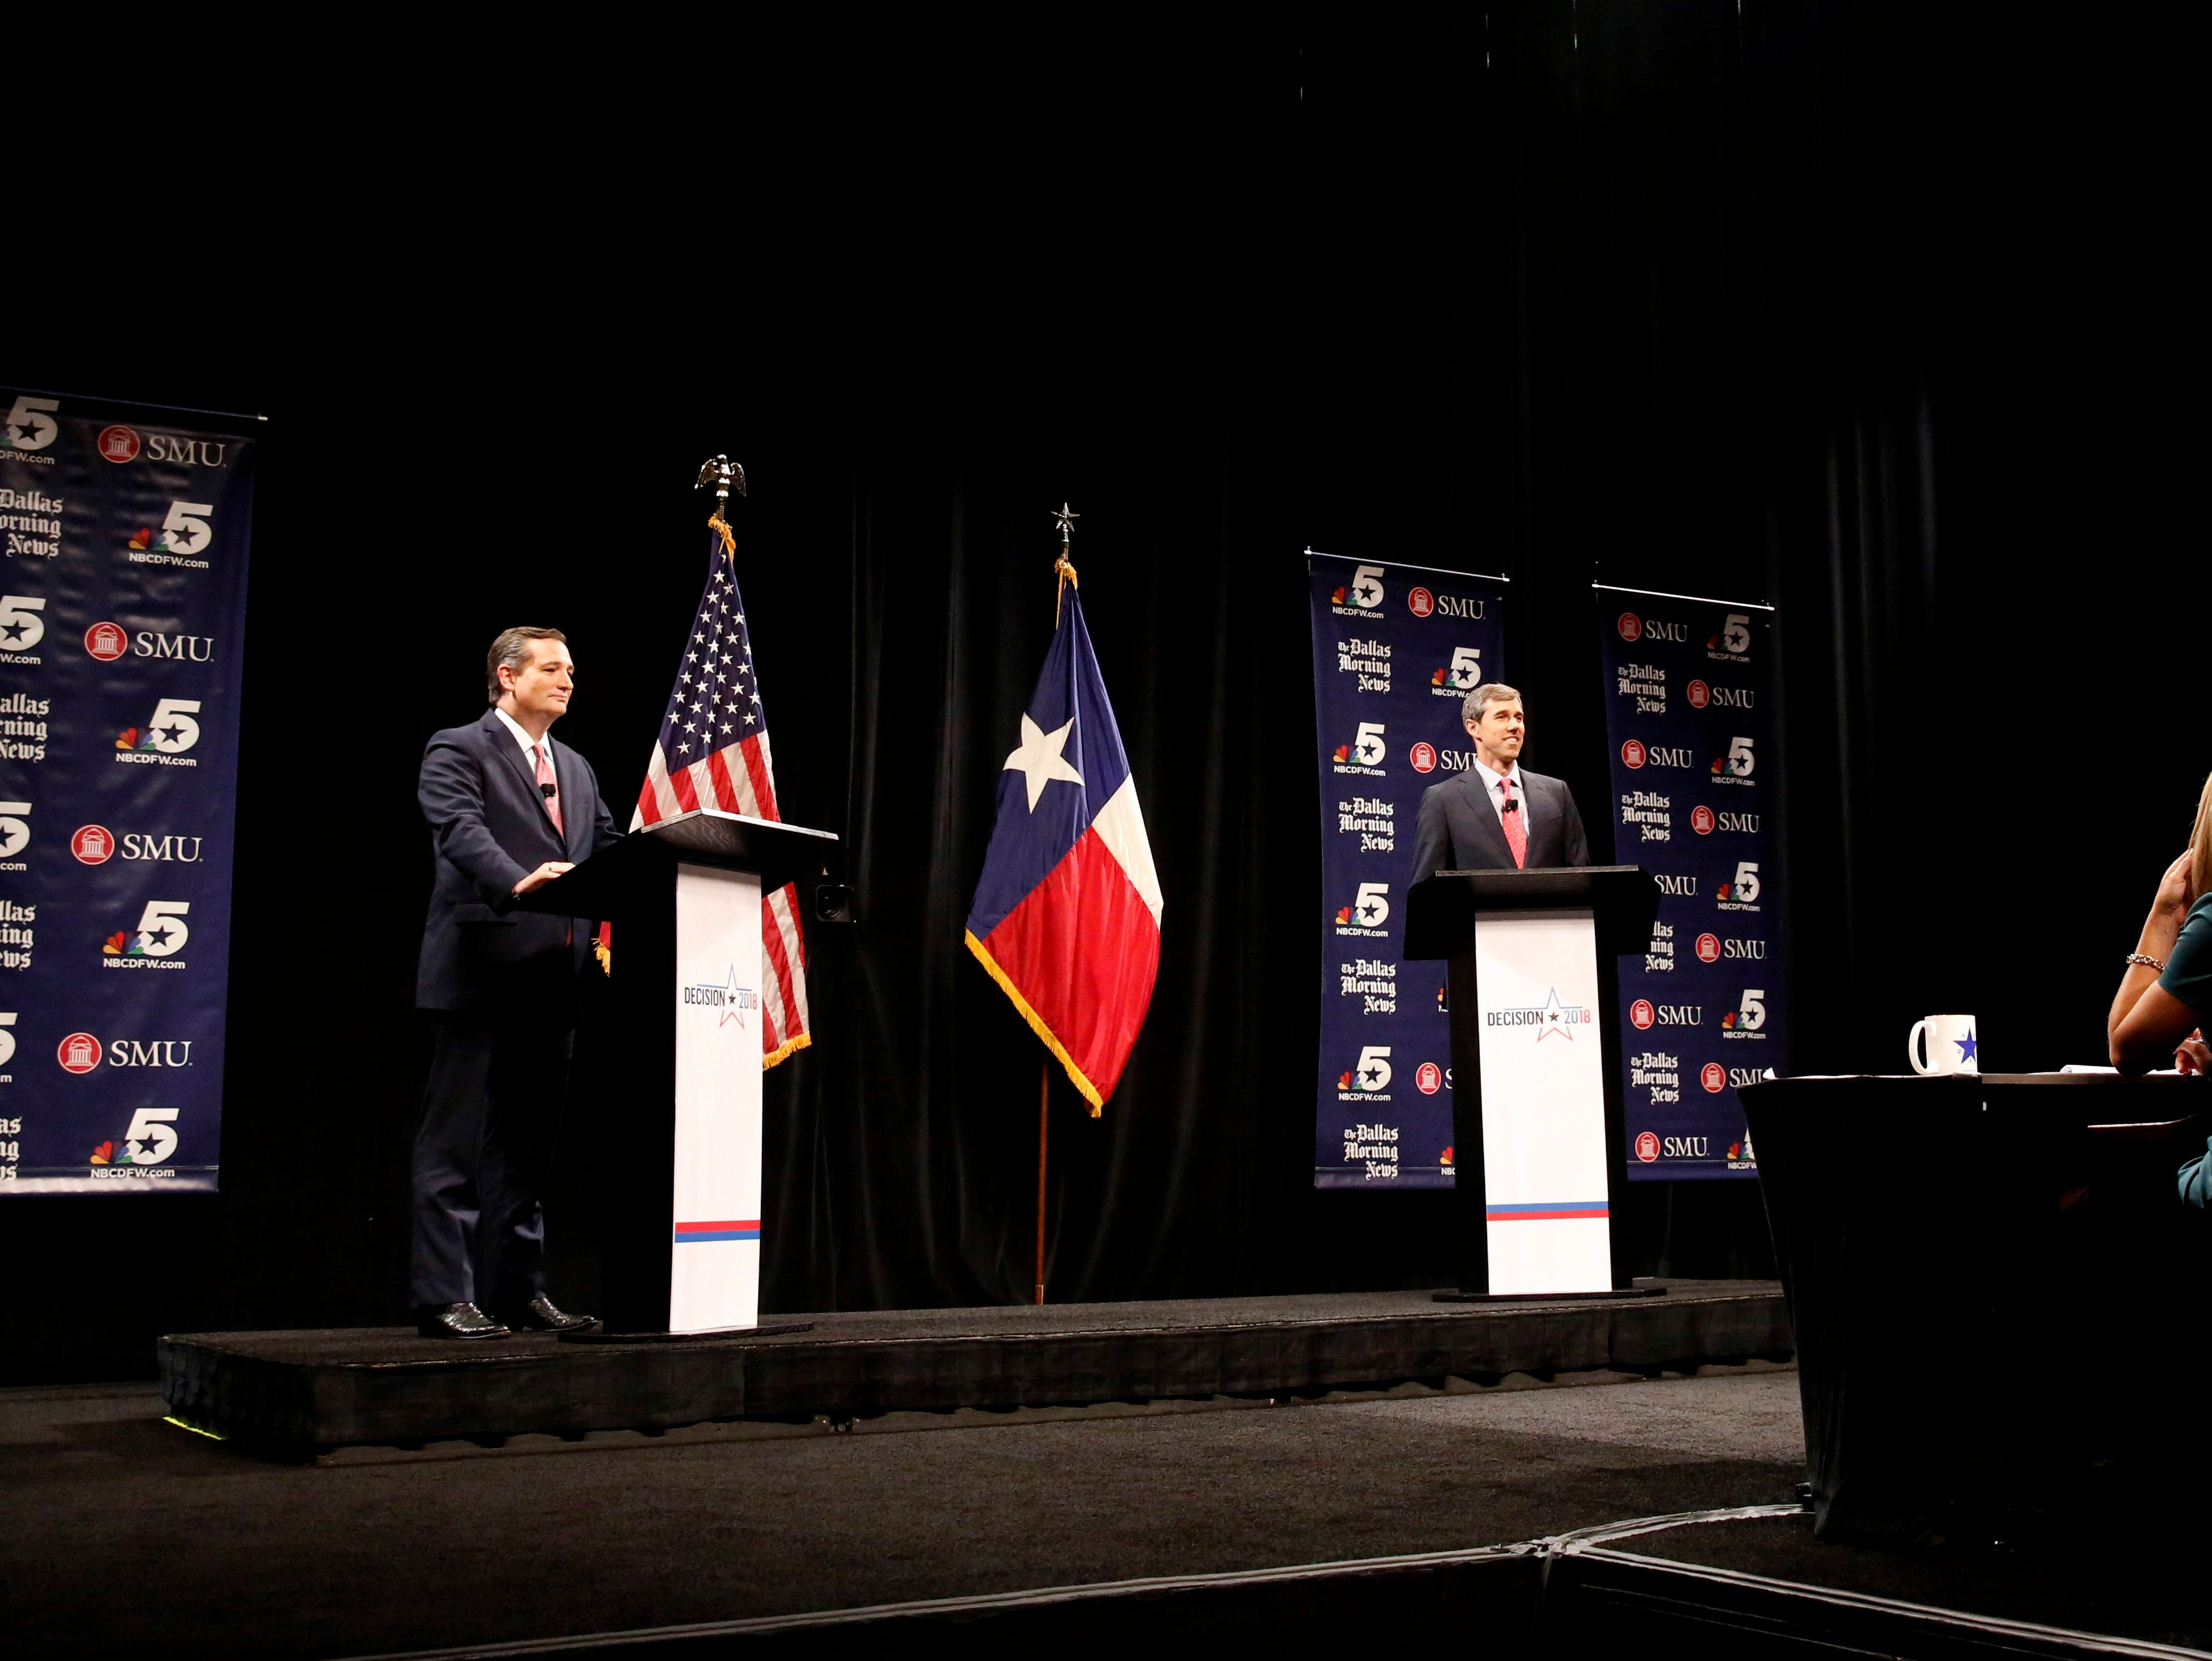 Republican U.S. Senator Ted Cruz, left, and Democratic U.S. Representative Beto O'Rourke, second from left, take part in their first debate for the Texas U.S. Senate in Dallas, Friday, Sept. 21, 2018. (Tom Fox/The Dallas Morning News via AP, Pool)